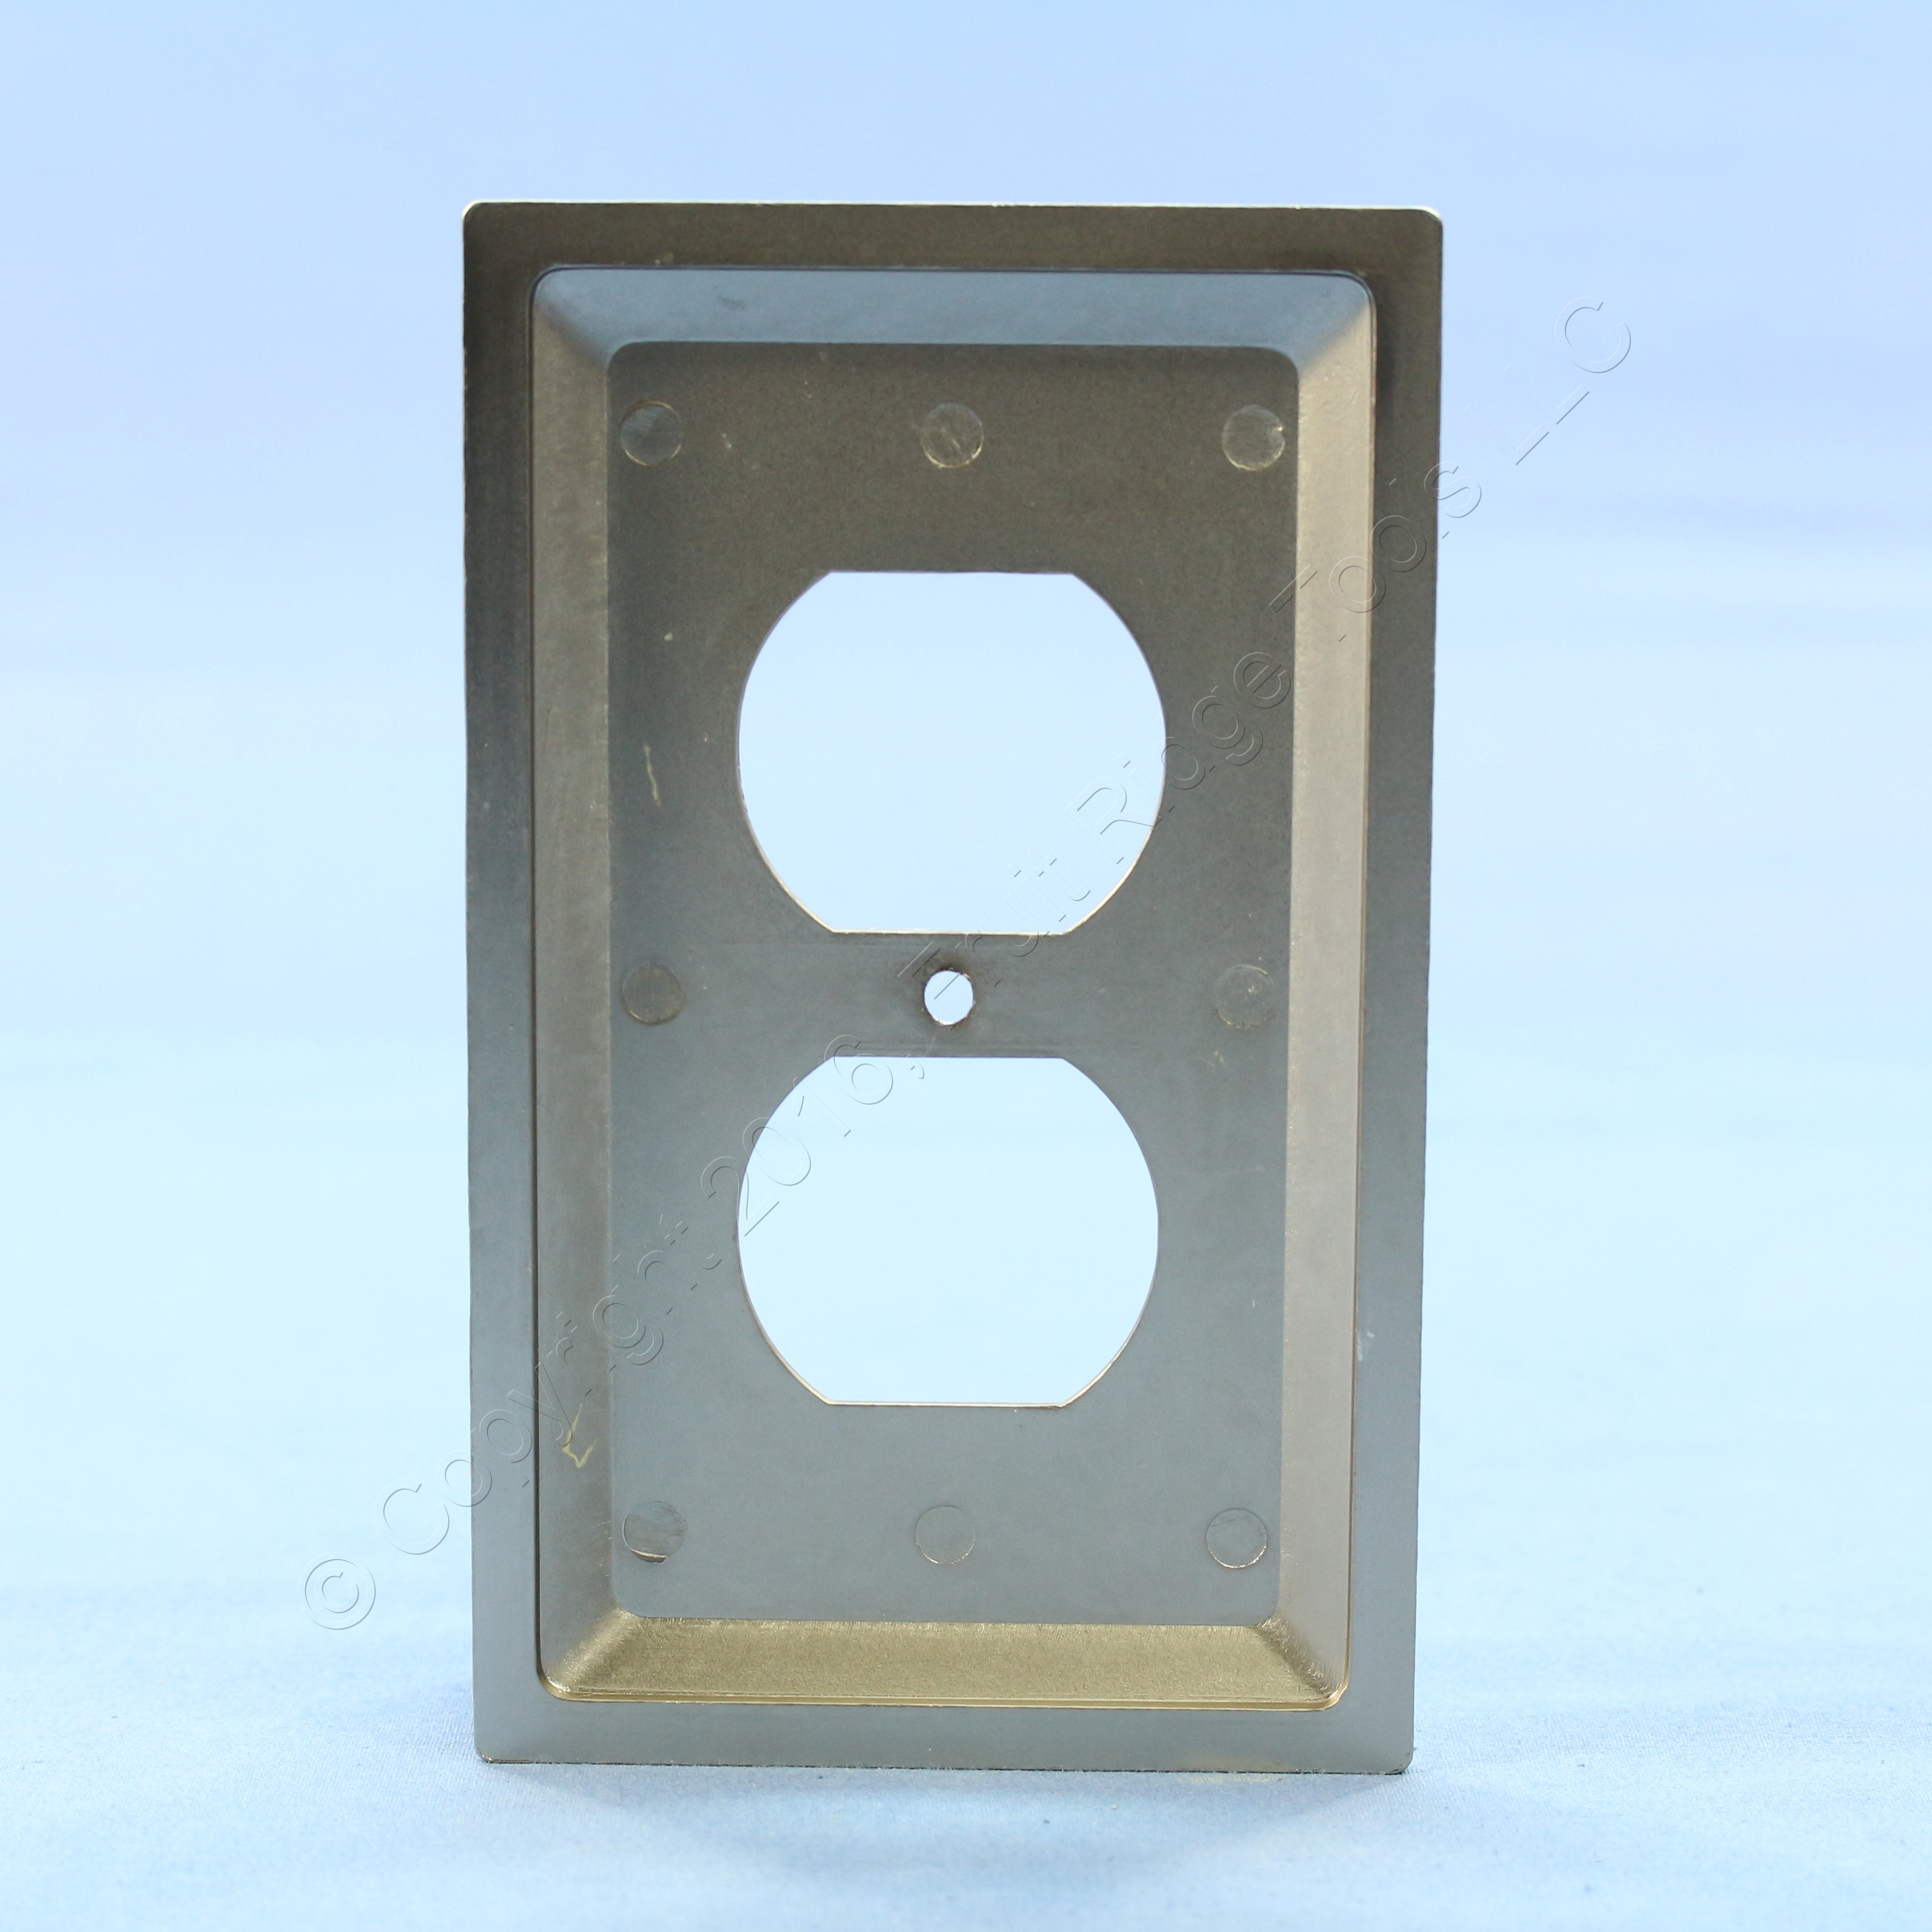 Leviton Satin Nickel Brushed Chrome Receptacle Wallplate Duplex Outlet Cover 89603-STC